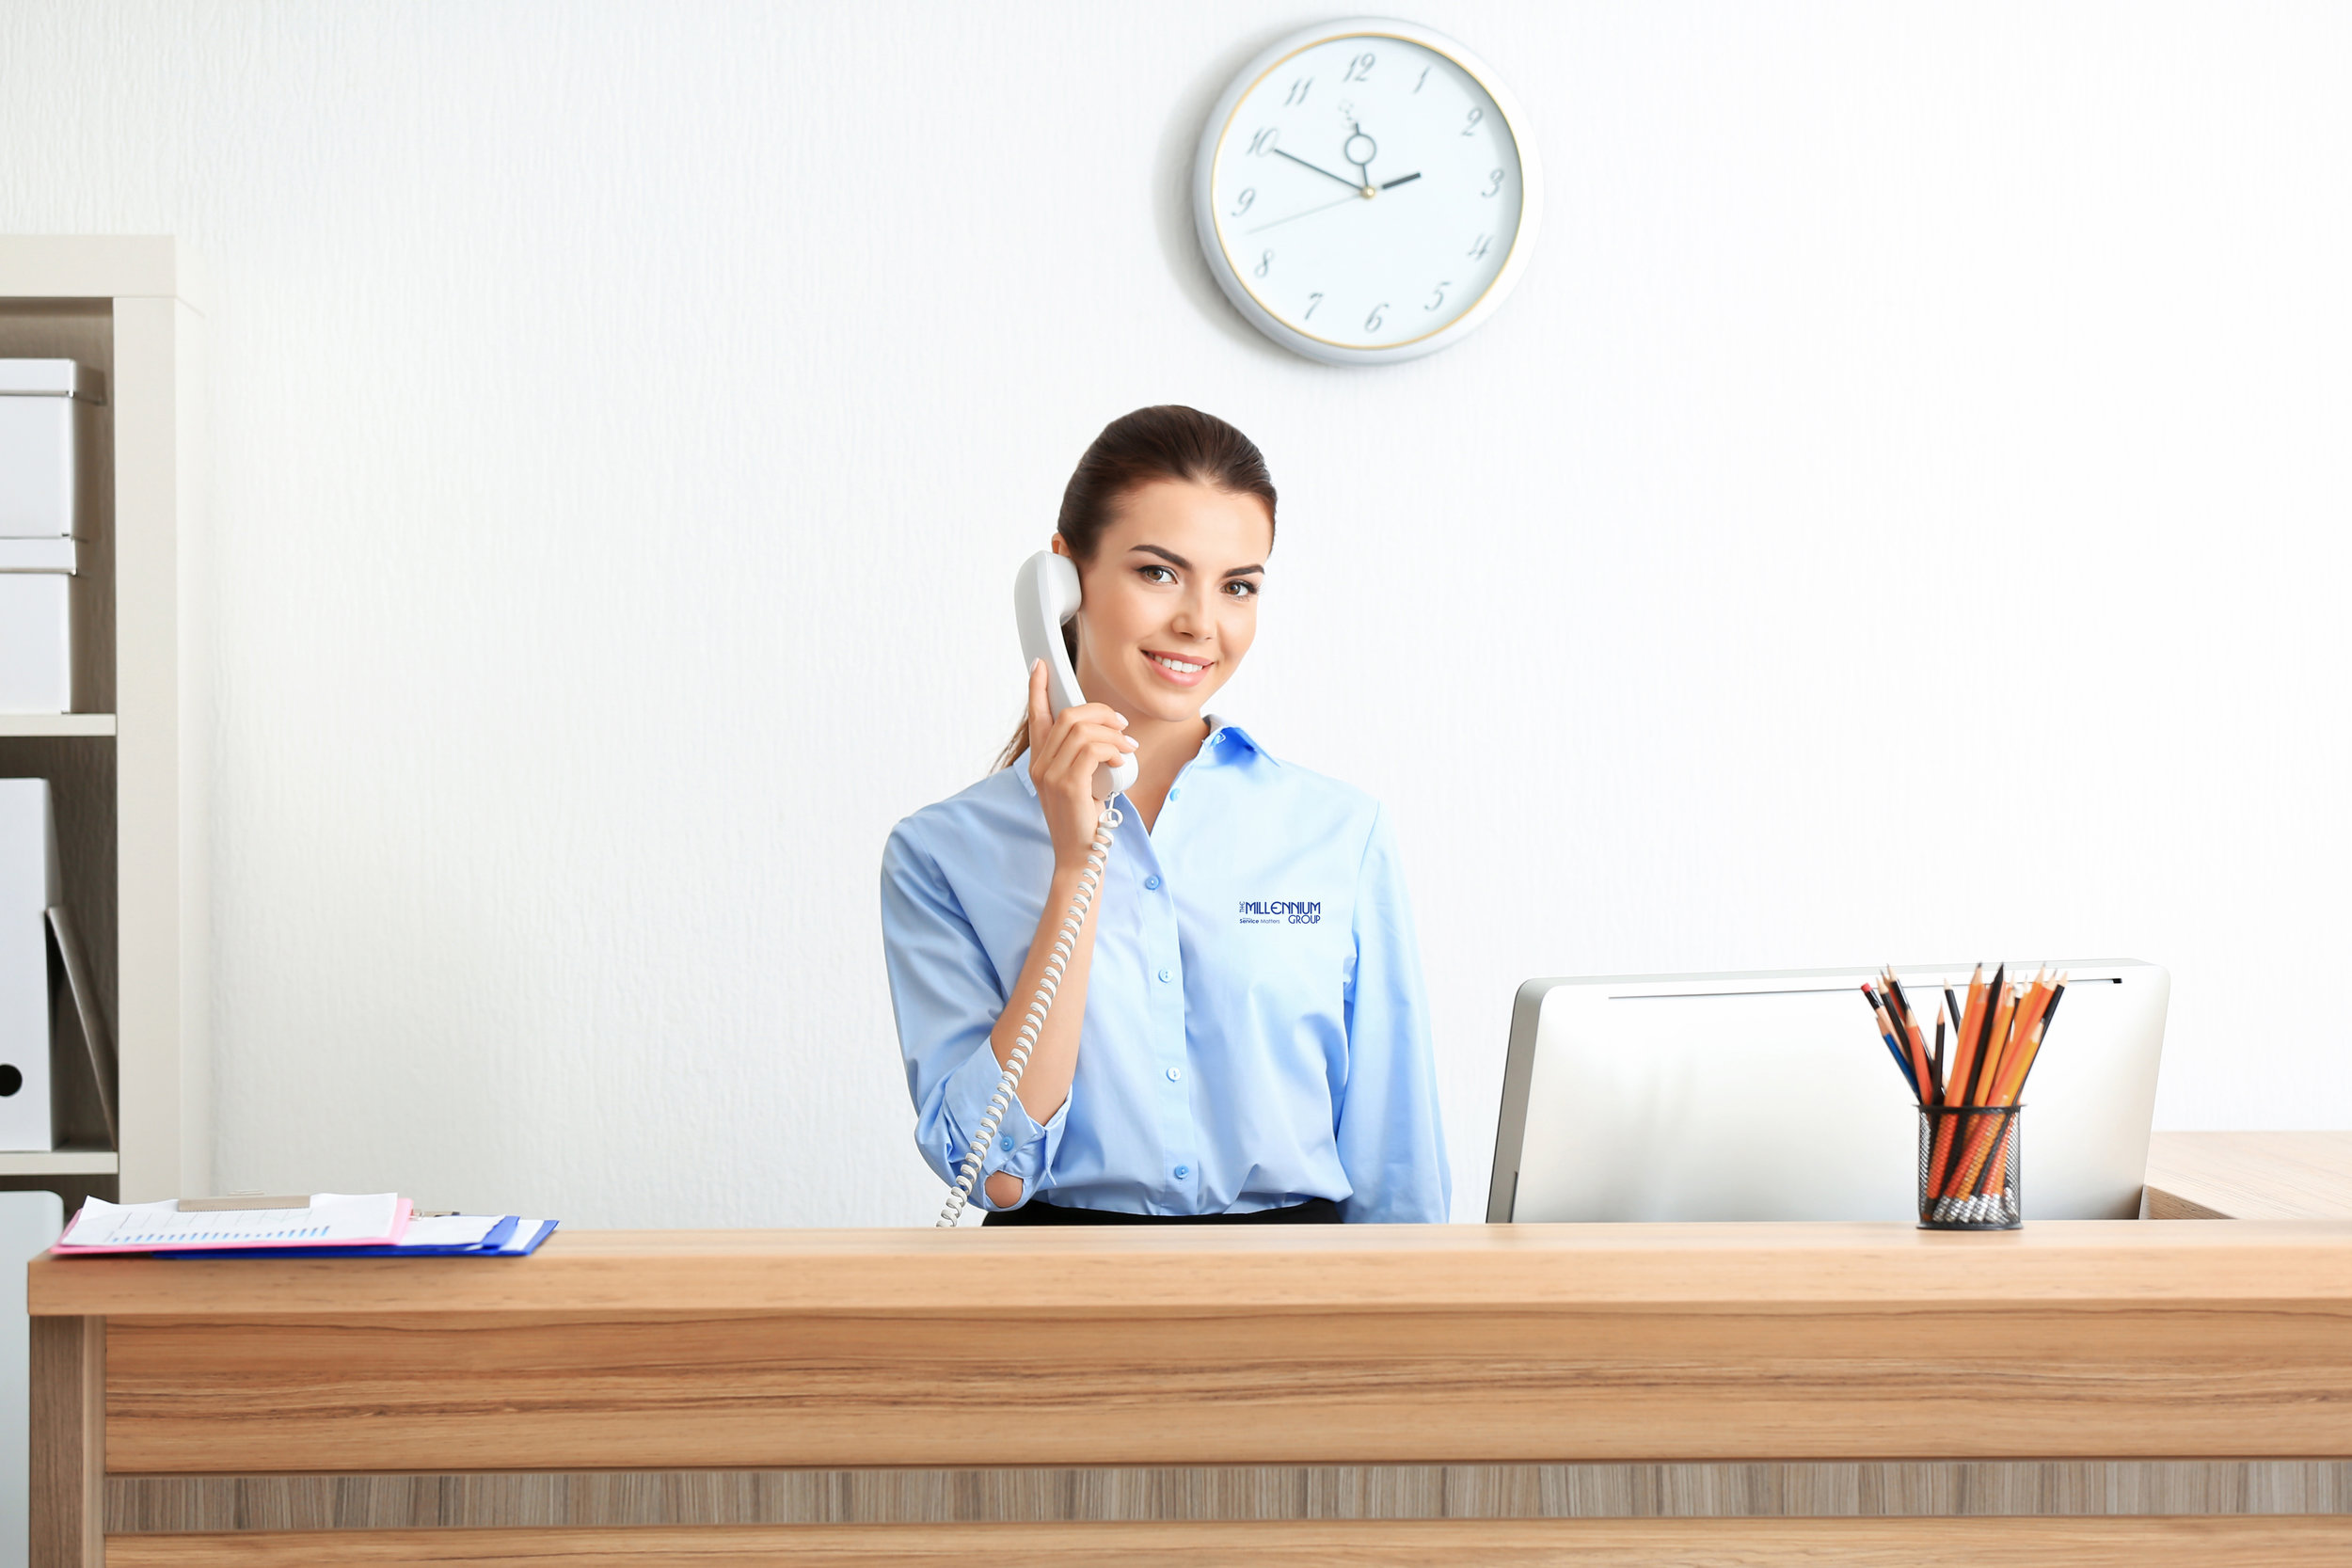 Office Services - Retaining quality professionals, reducing costs, and delivering Where Service Matters are paramount to a successful Office Services partnership.